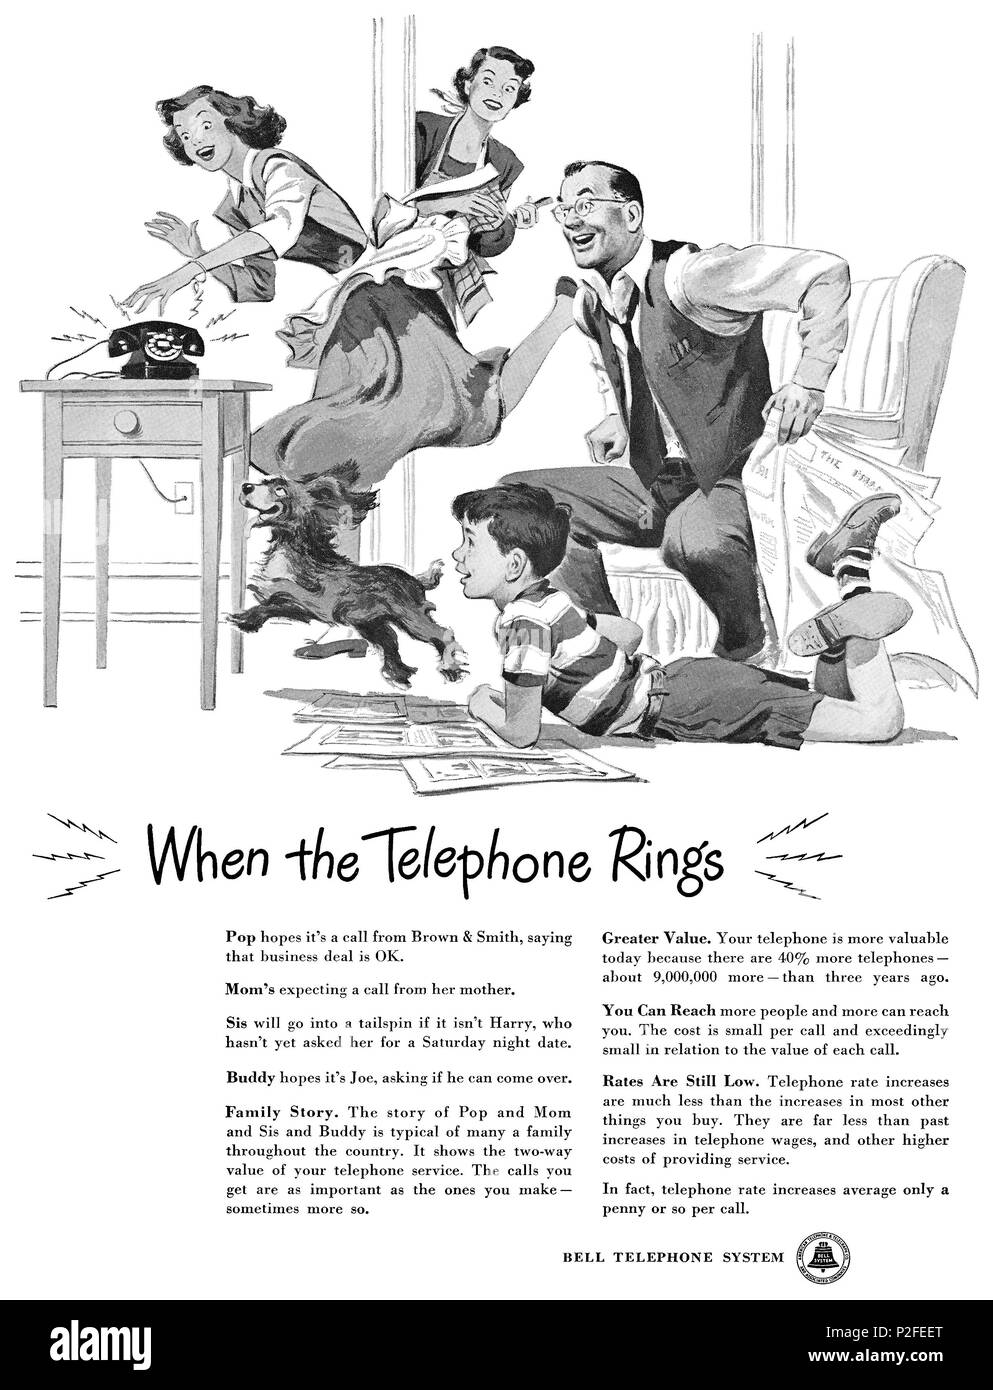 Bell Telephone System Stock Photos & Bell Telephone System Stock ...